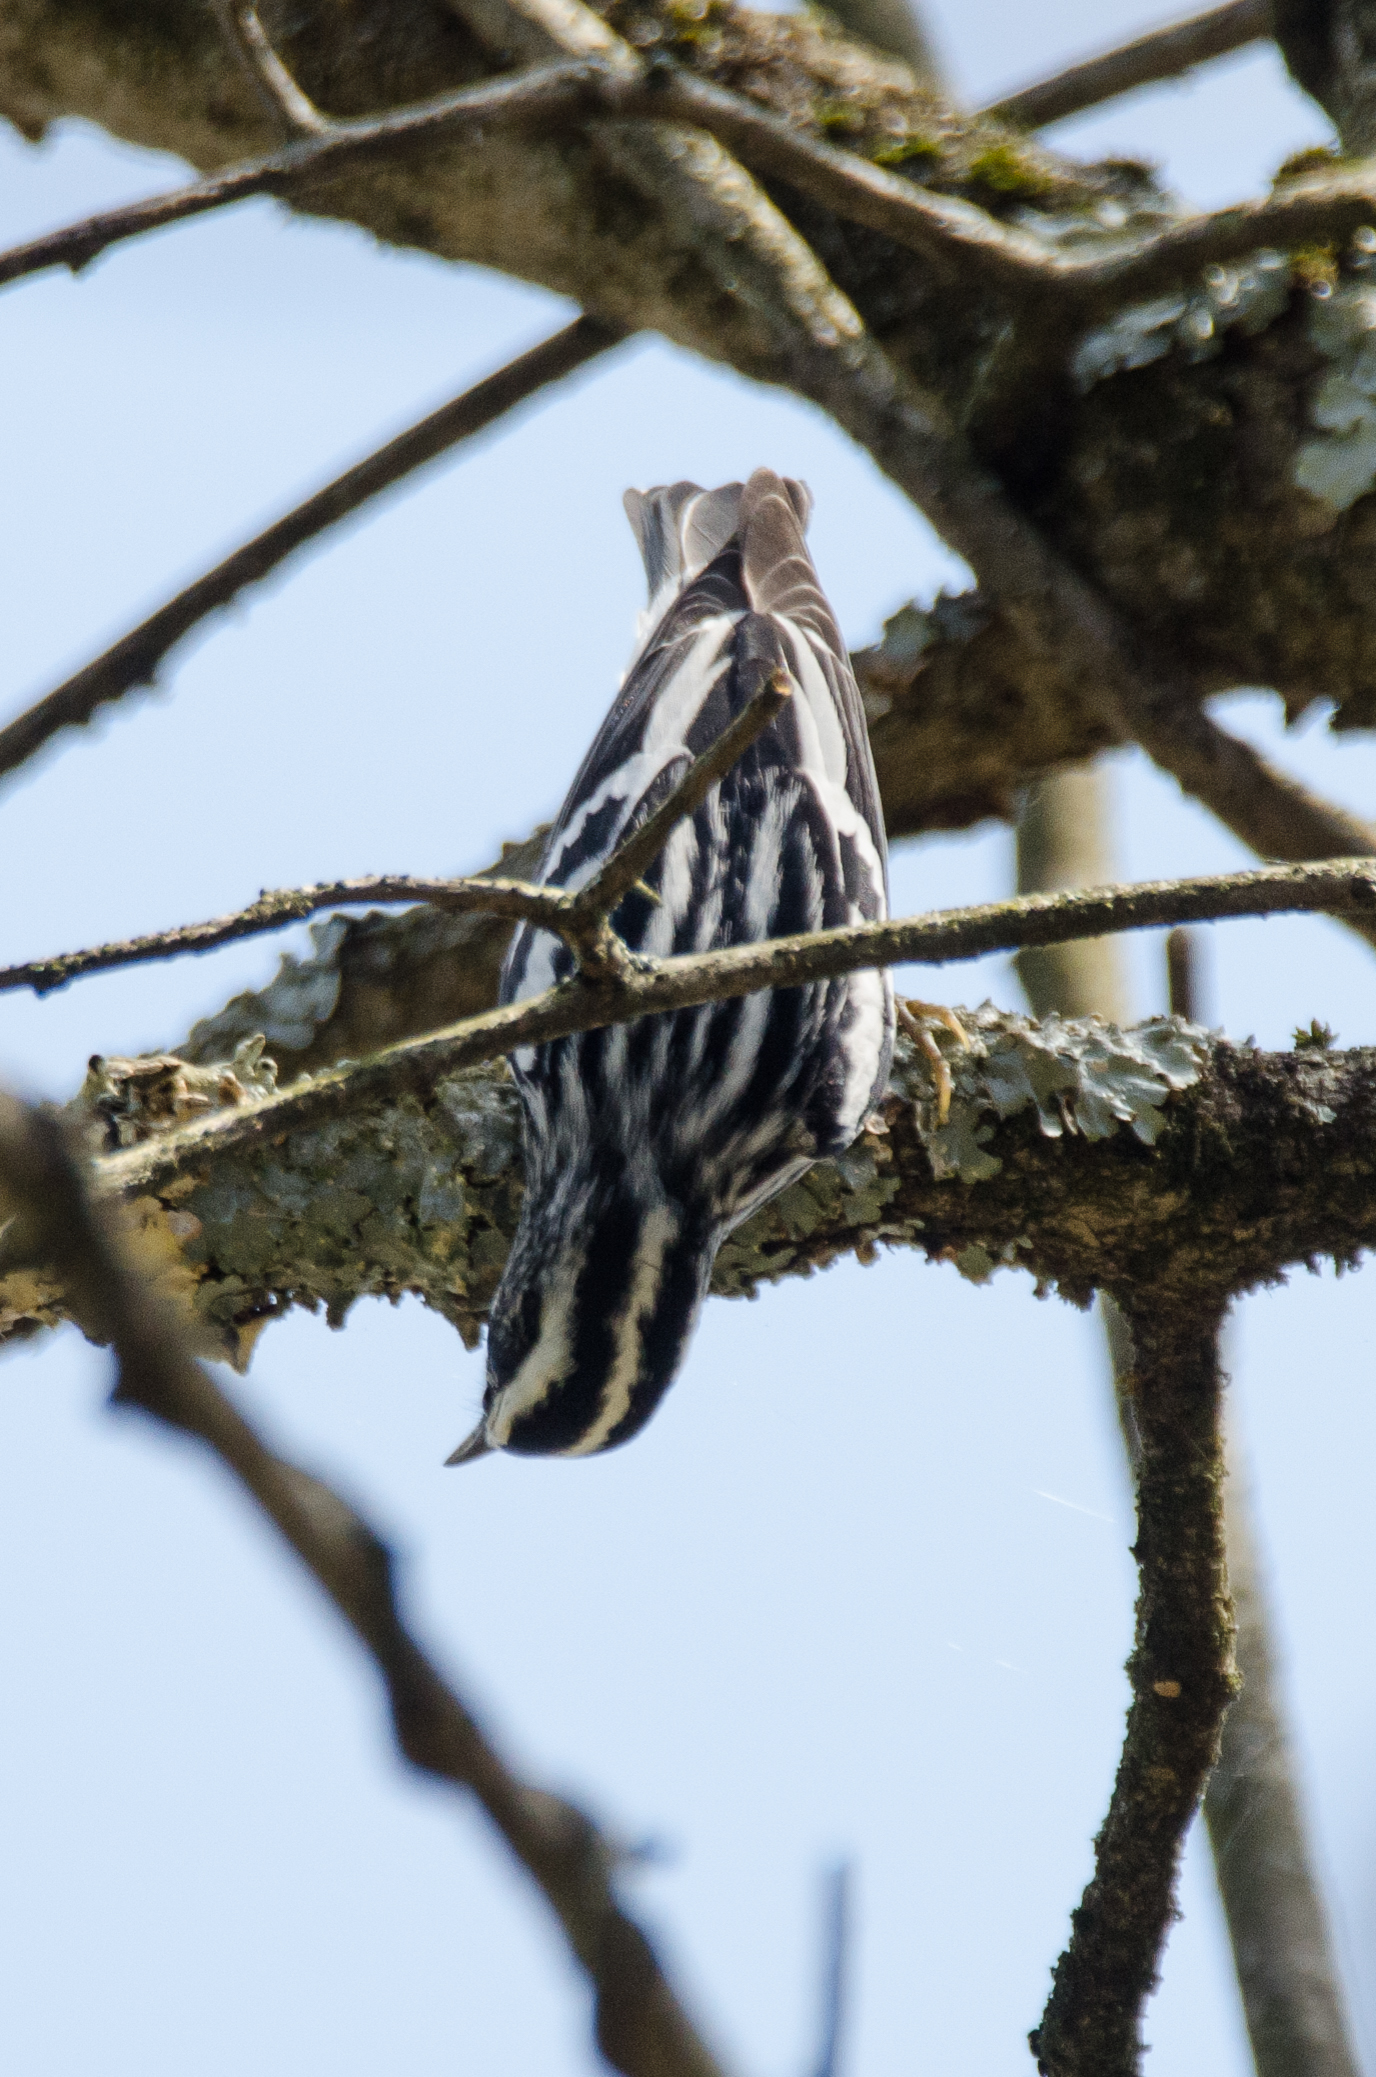 Black-and-White Warbler  Nikon D7000 ISO 720 600mm f/8.0 1/640 sec.